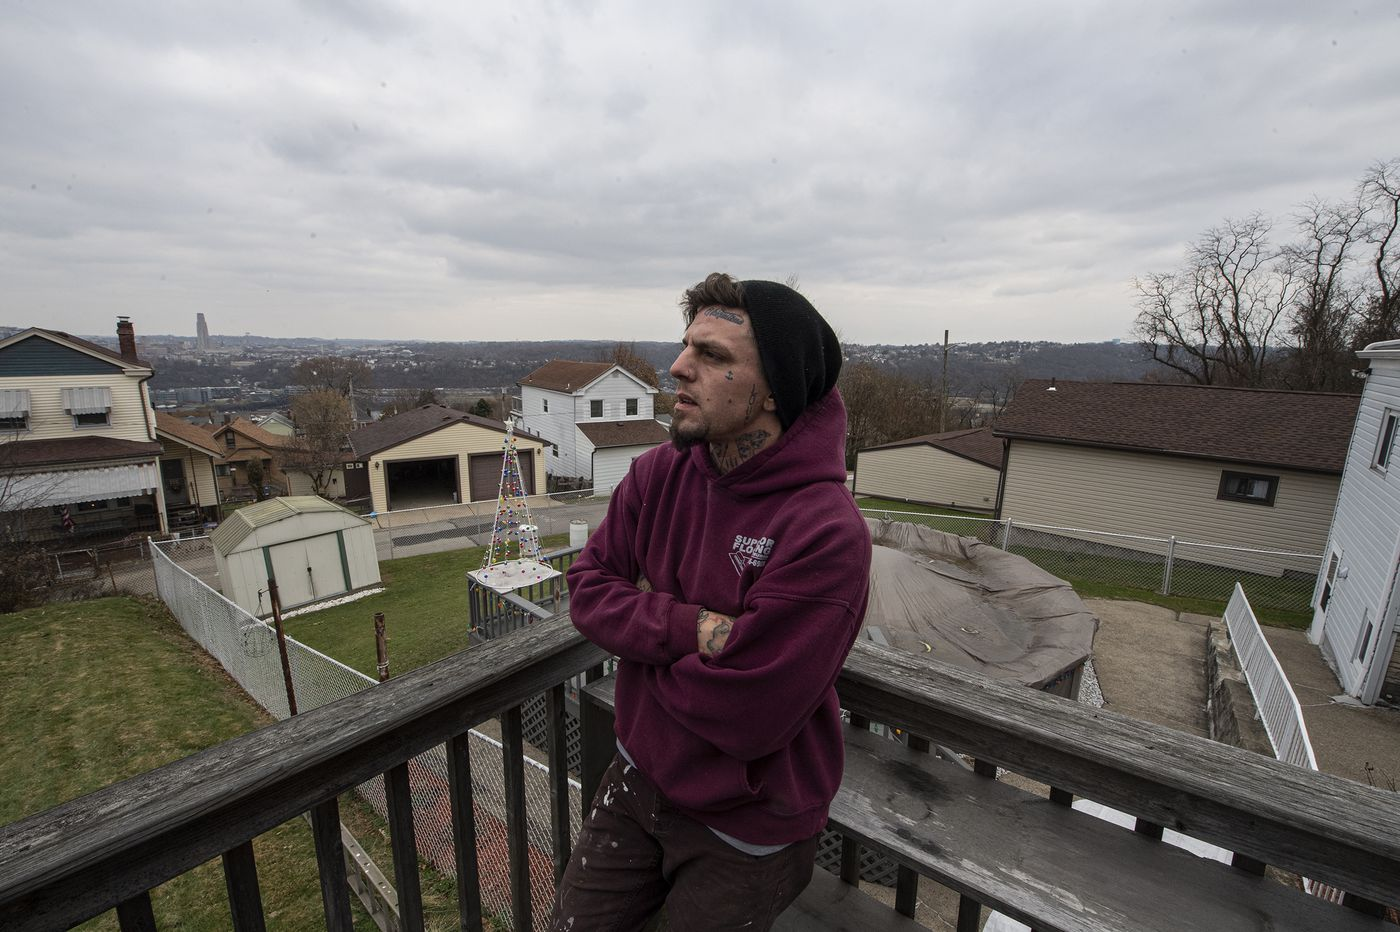 Drug overdose deaths dropped 40% last year in the Pittsburgh area. Why can't Philadelphia do the same?